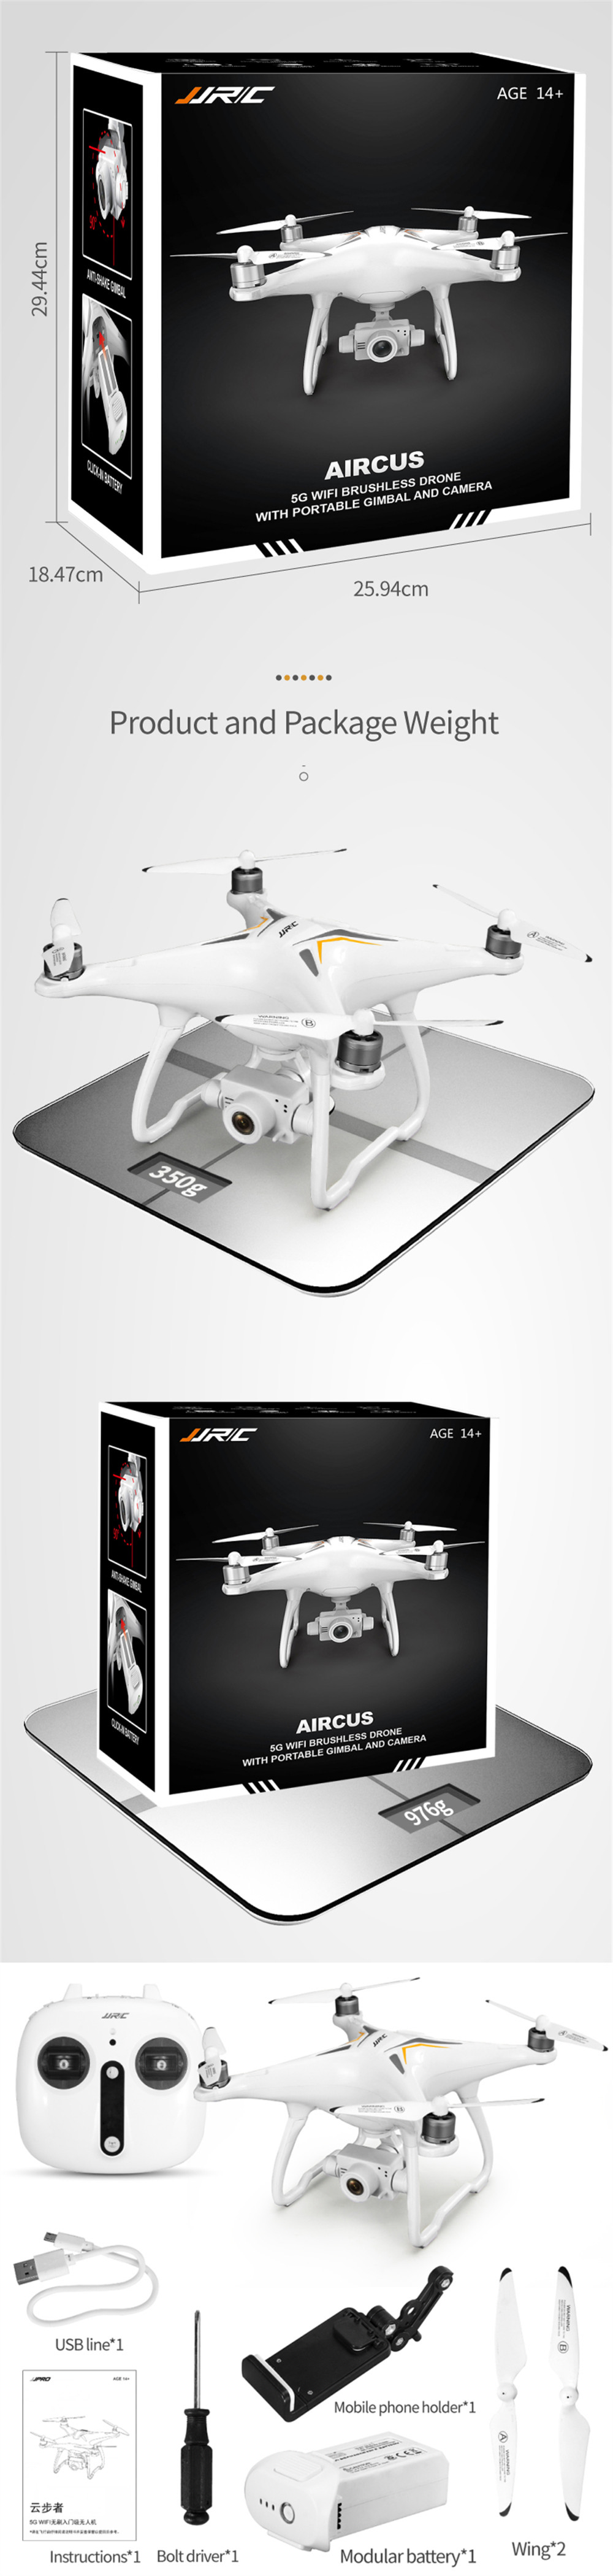 JJRC X6 Aircus 5G WIFI FPV Double GPS With 1080P Wide Angle Camera Two-Axis Self-Stabilizing Gimbal Altitude Mode RC Drone Quadcopter RTF - Photo: 5